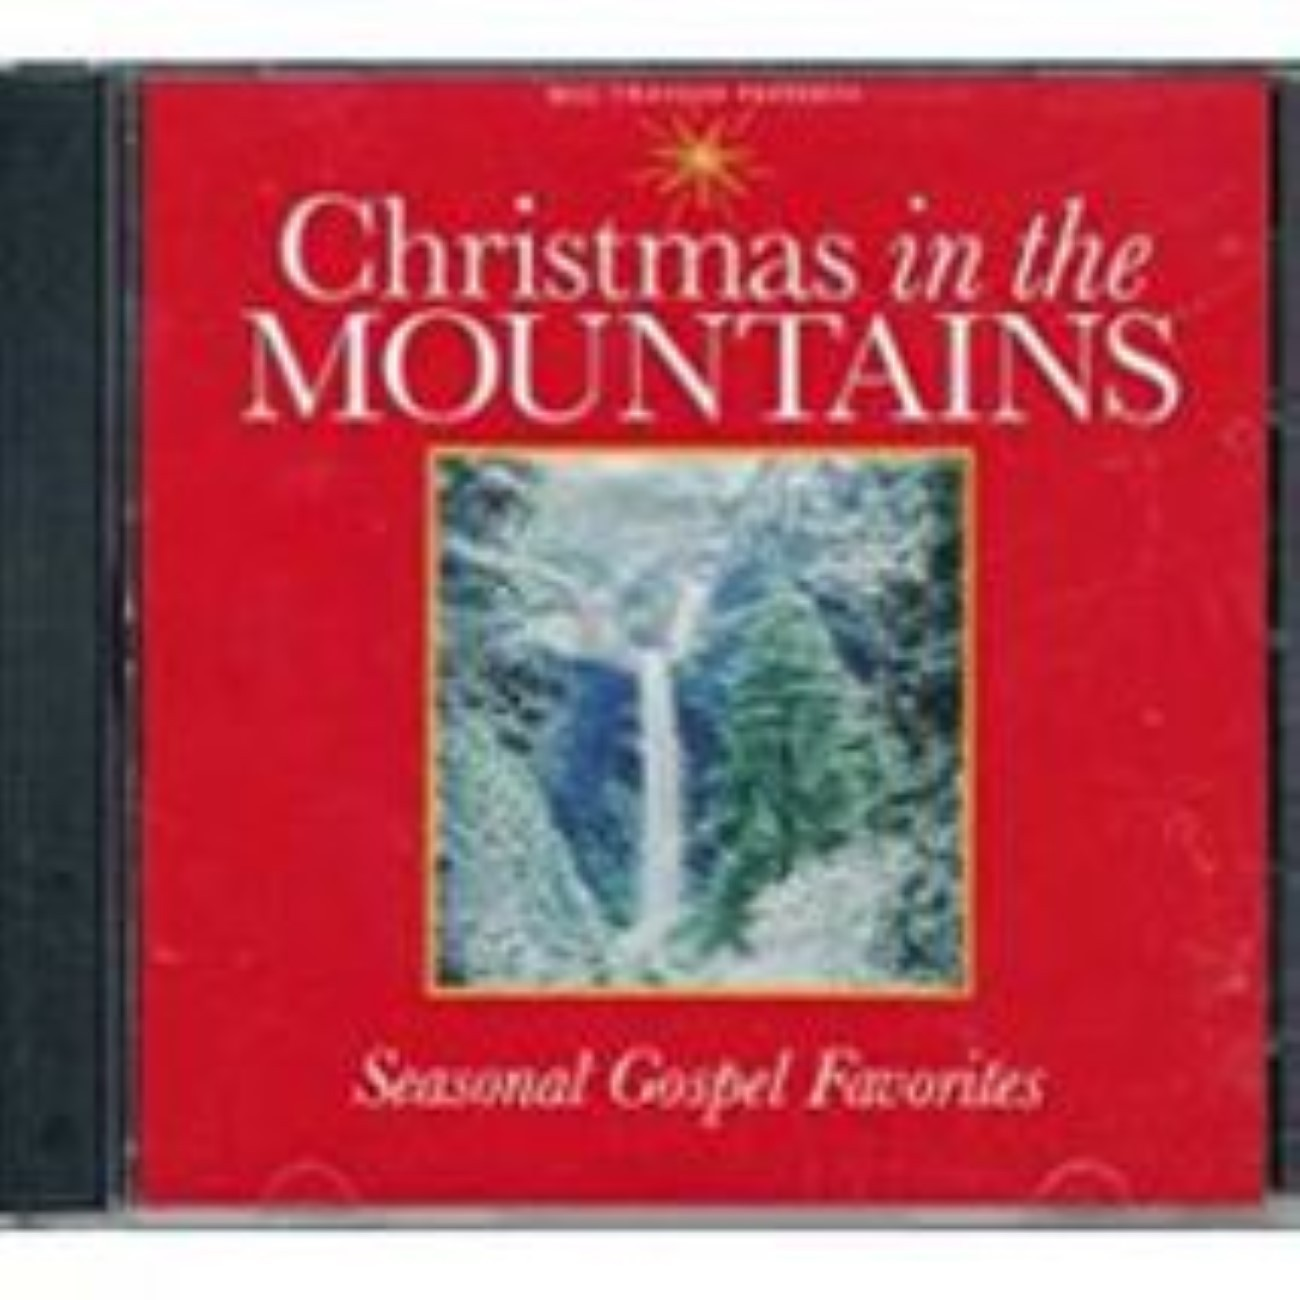 Christmas in the Mountains by Bill Traylor Cd